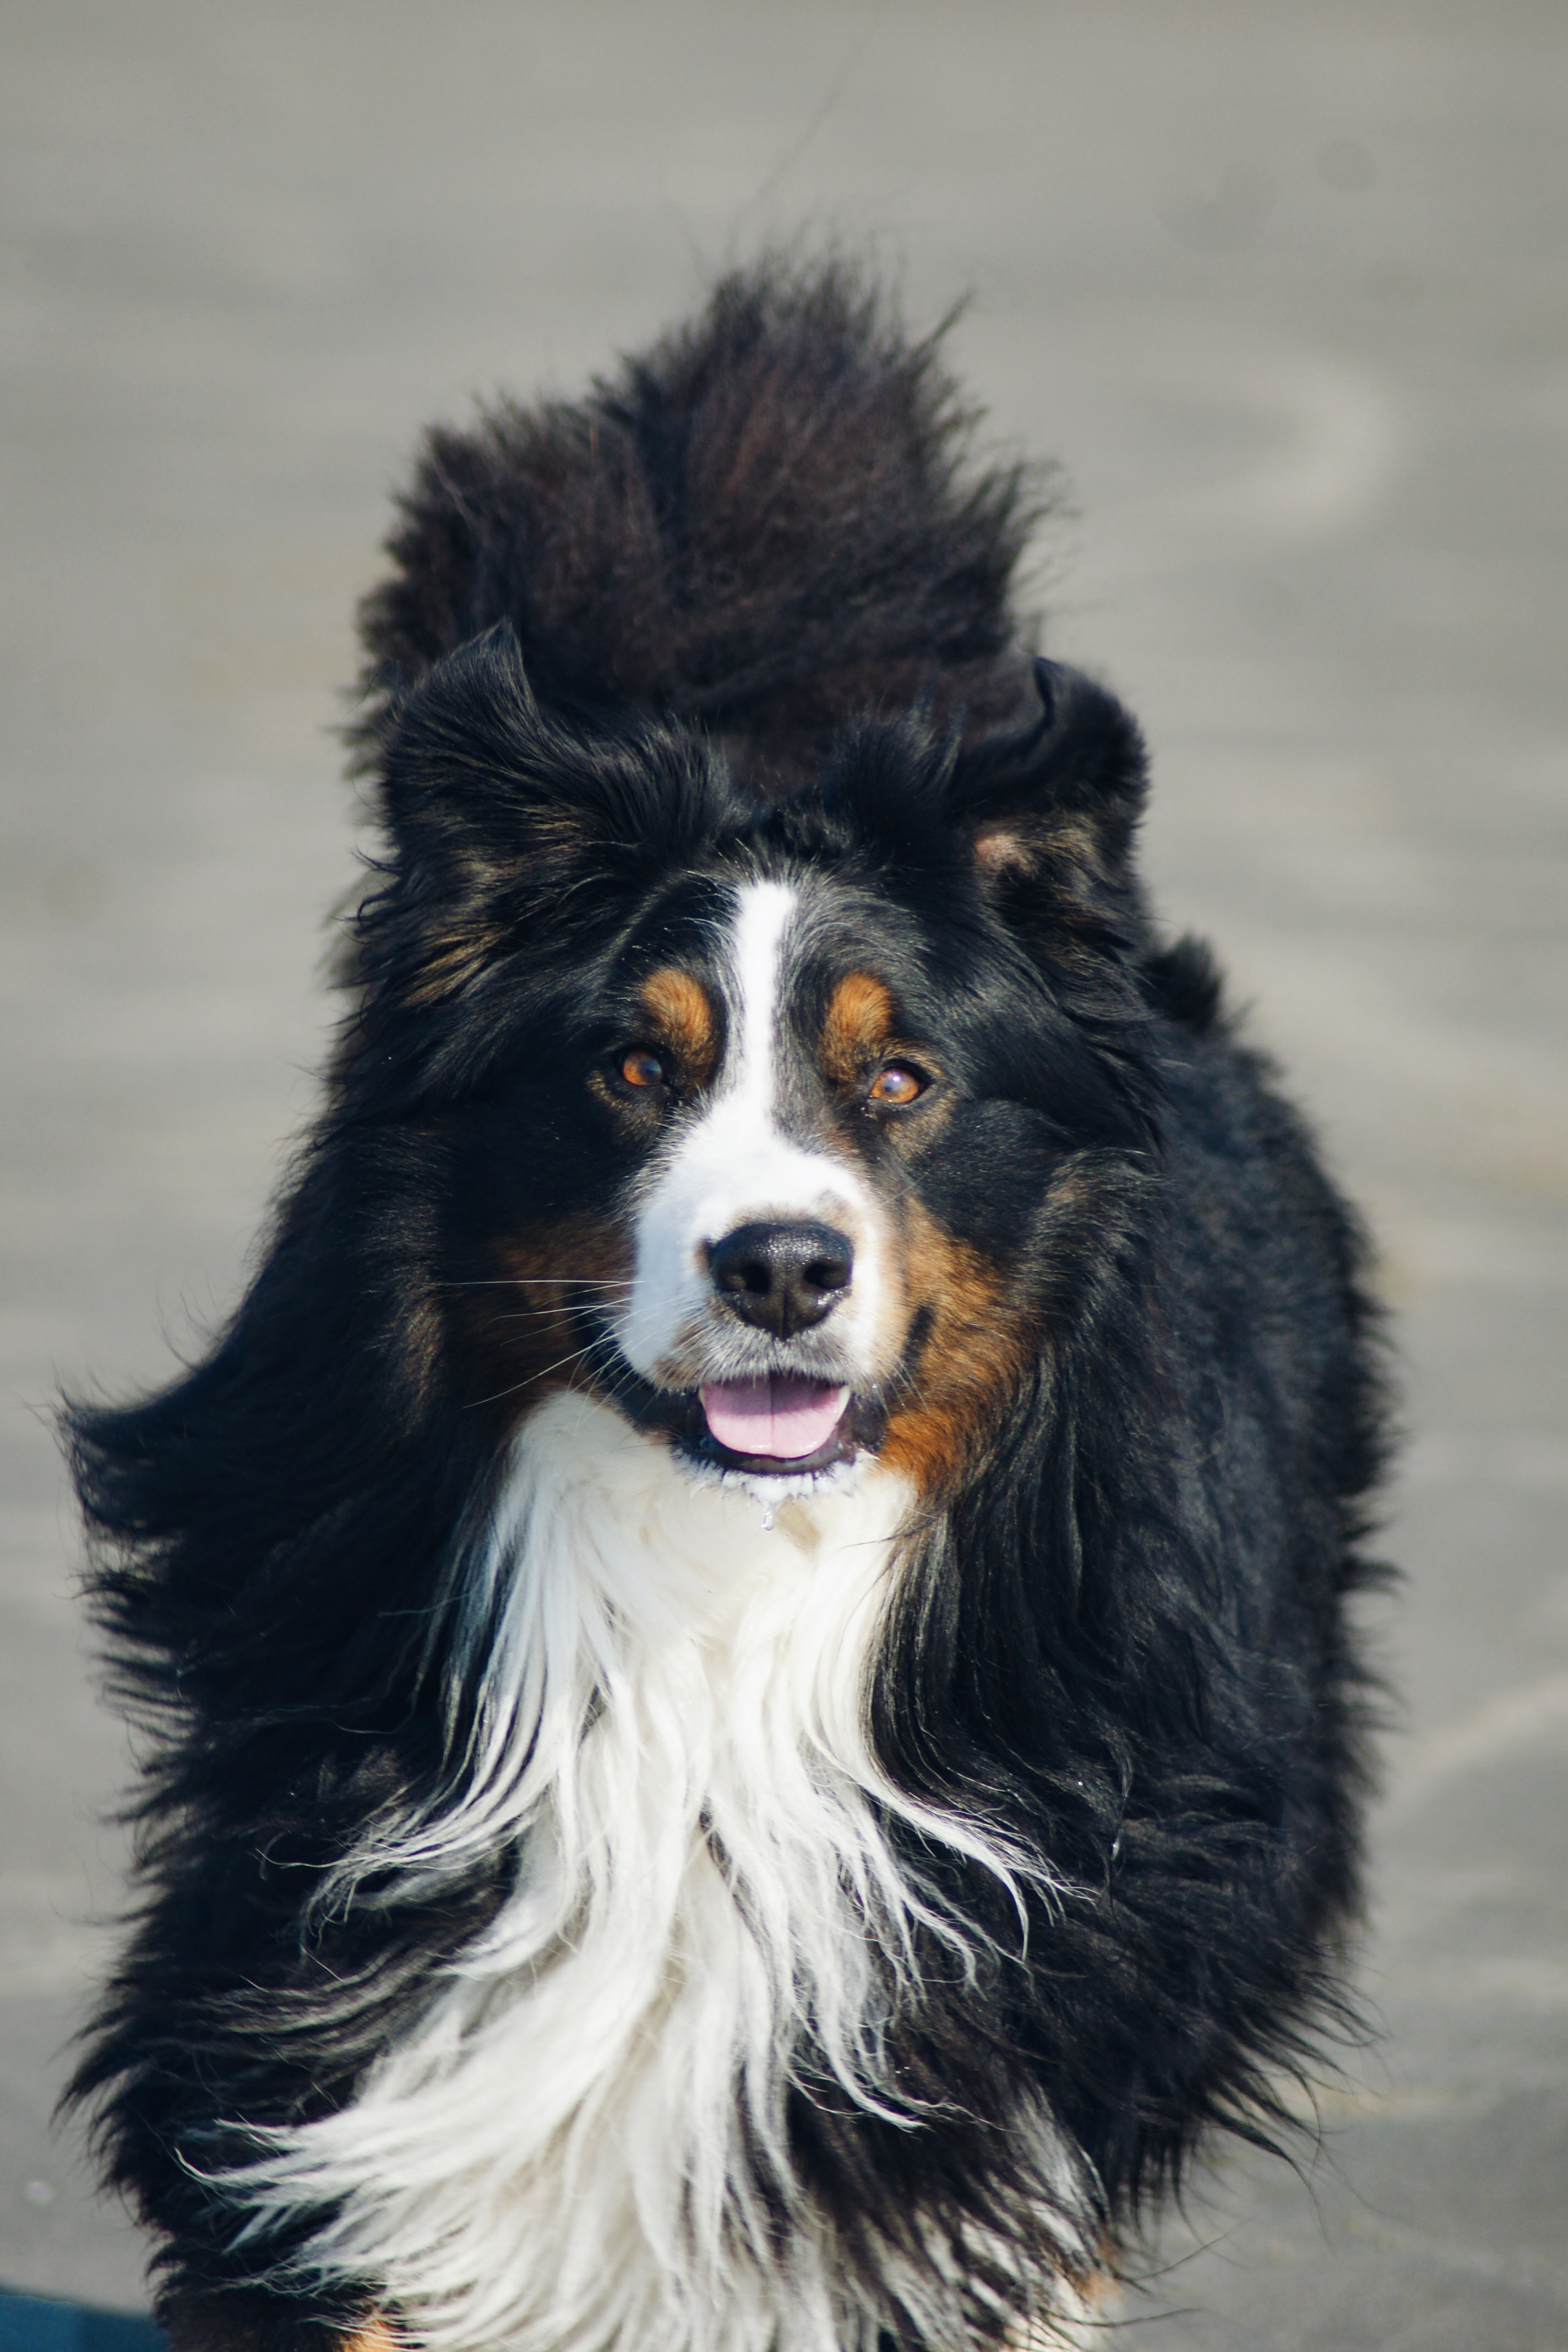 89103 download wallpaper Animals, Bernese Mountain Dog, Berne Zennenhund, Dog, Protruding Tongue, Tongue Stuck Out, Pet screensavers and pictures for free